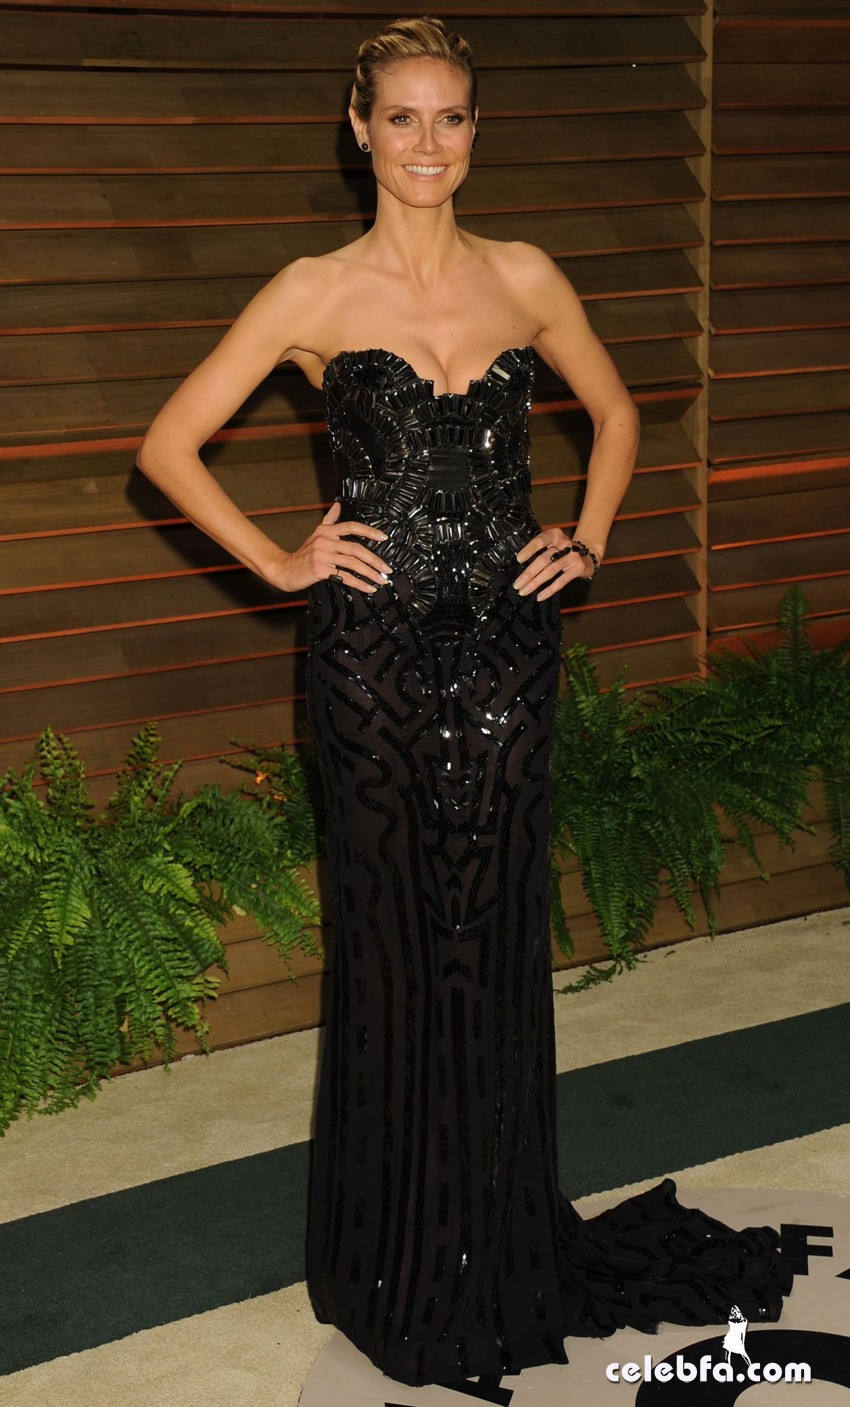 heidi-klum-at-2014-vanity-fair-oscar-party-CelebFa (2)